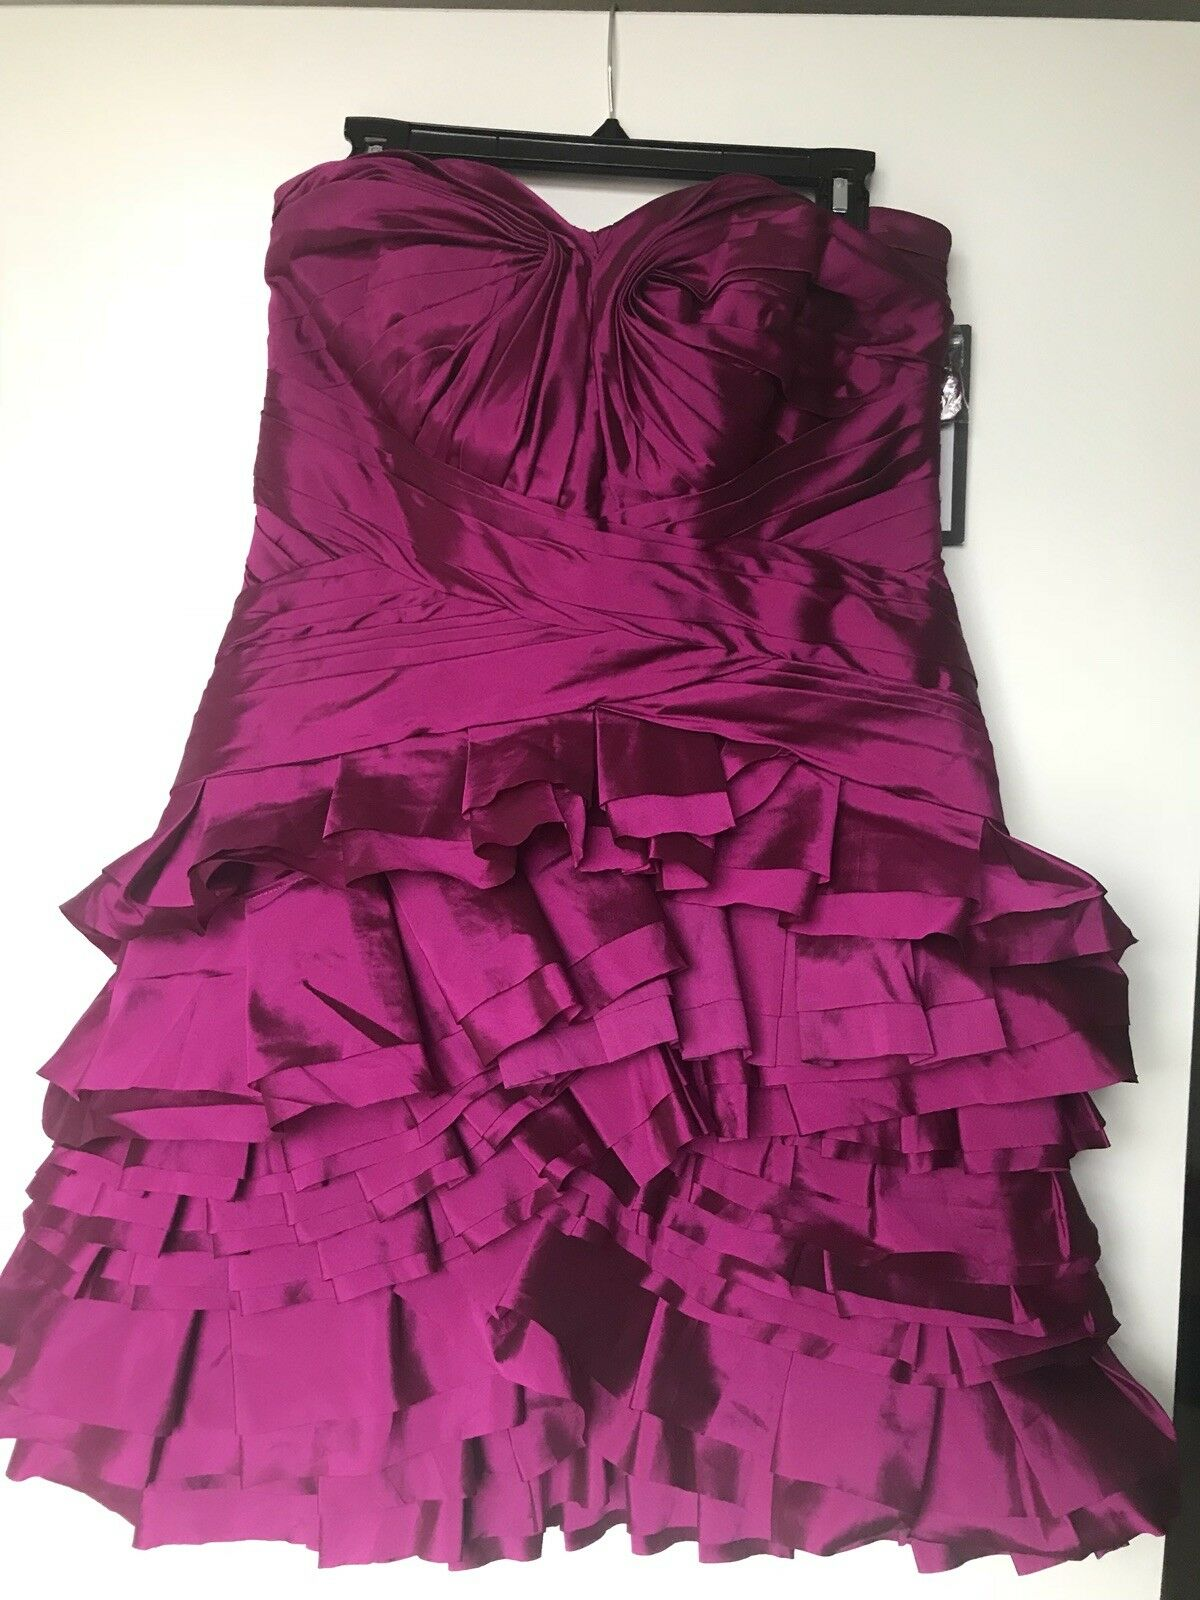 7900caeb7 NEW LHUILLIER Formal Evening Bridesmaid Dress Gown 698 Size 14 ...